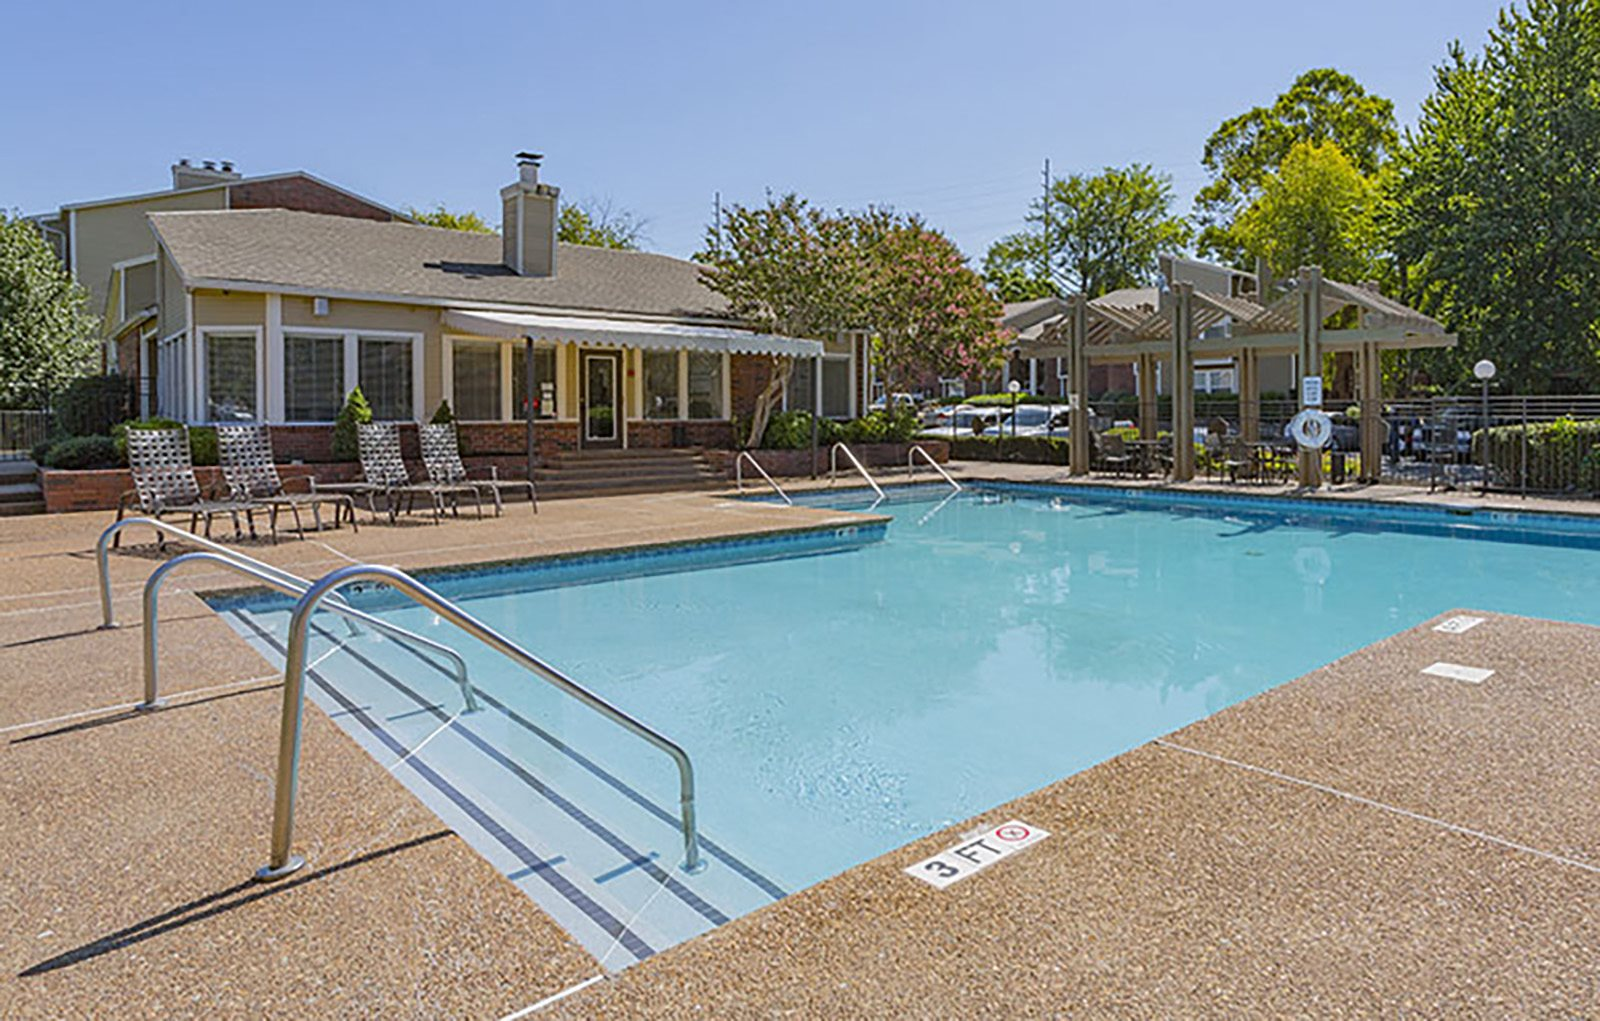 Outdoor pool and sundeck with chairs